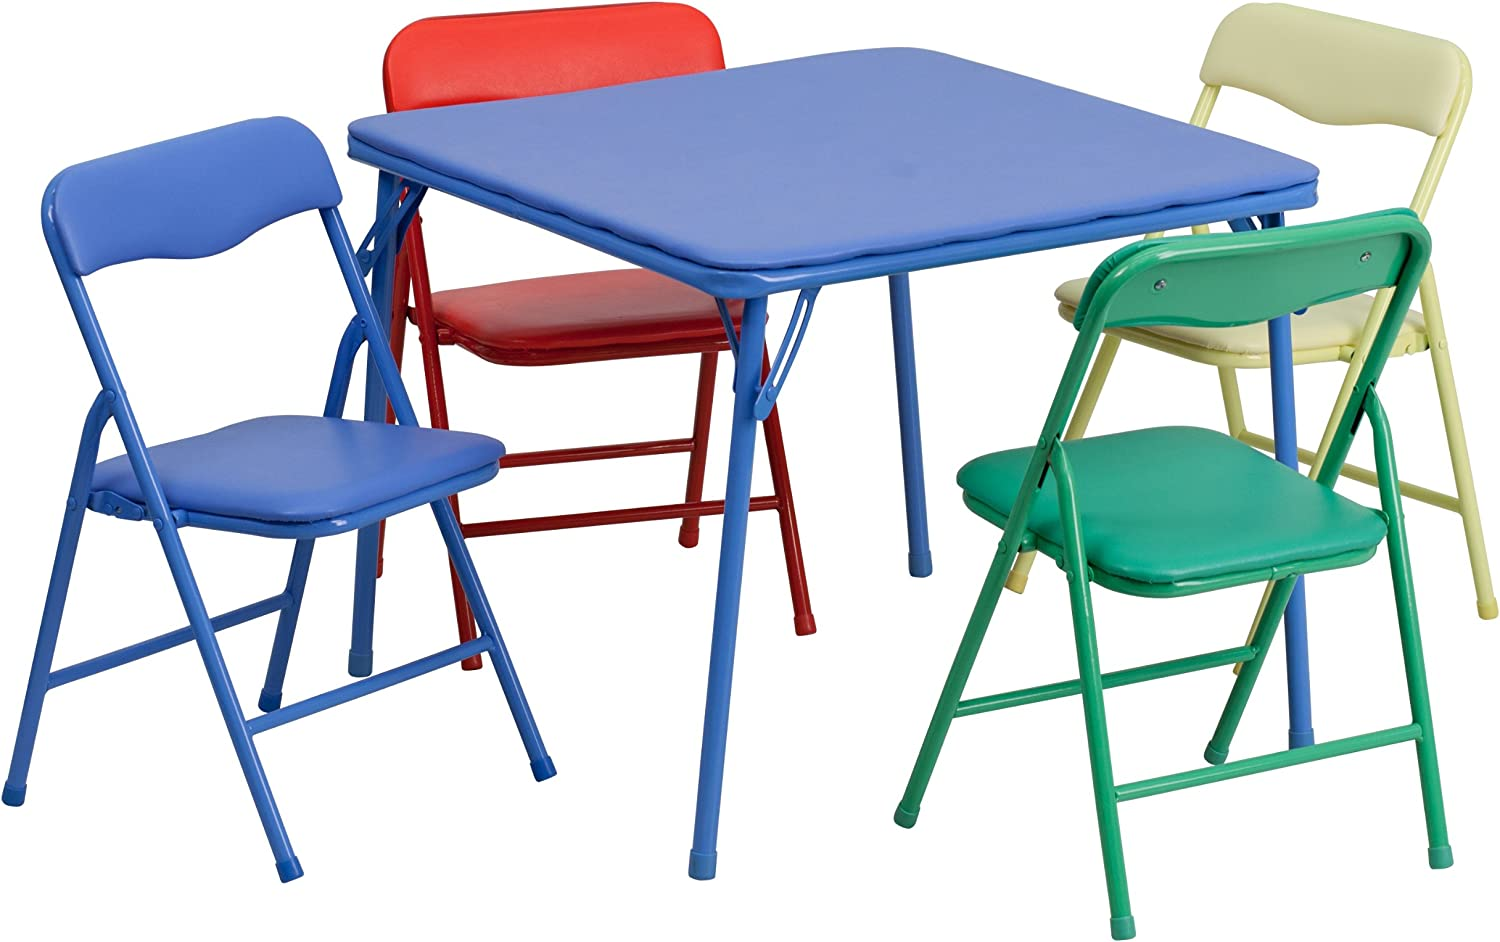 B00E84CG1K Flash Furniture Kids Colorful 5 Piece Folding Table and Chair Set 81n8sPEDUCL